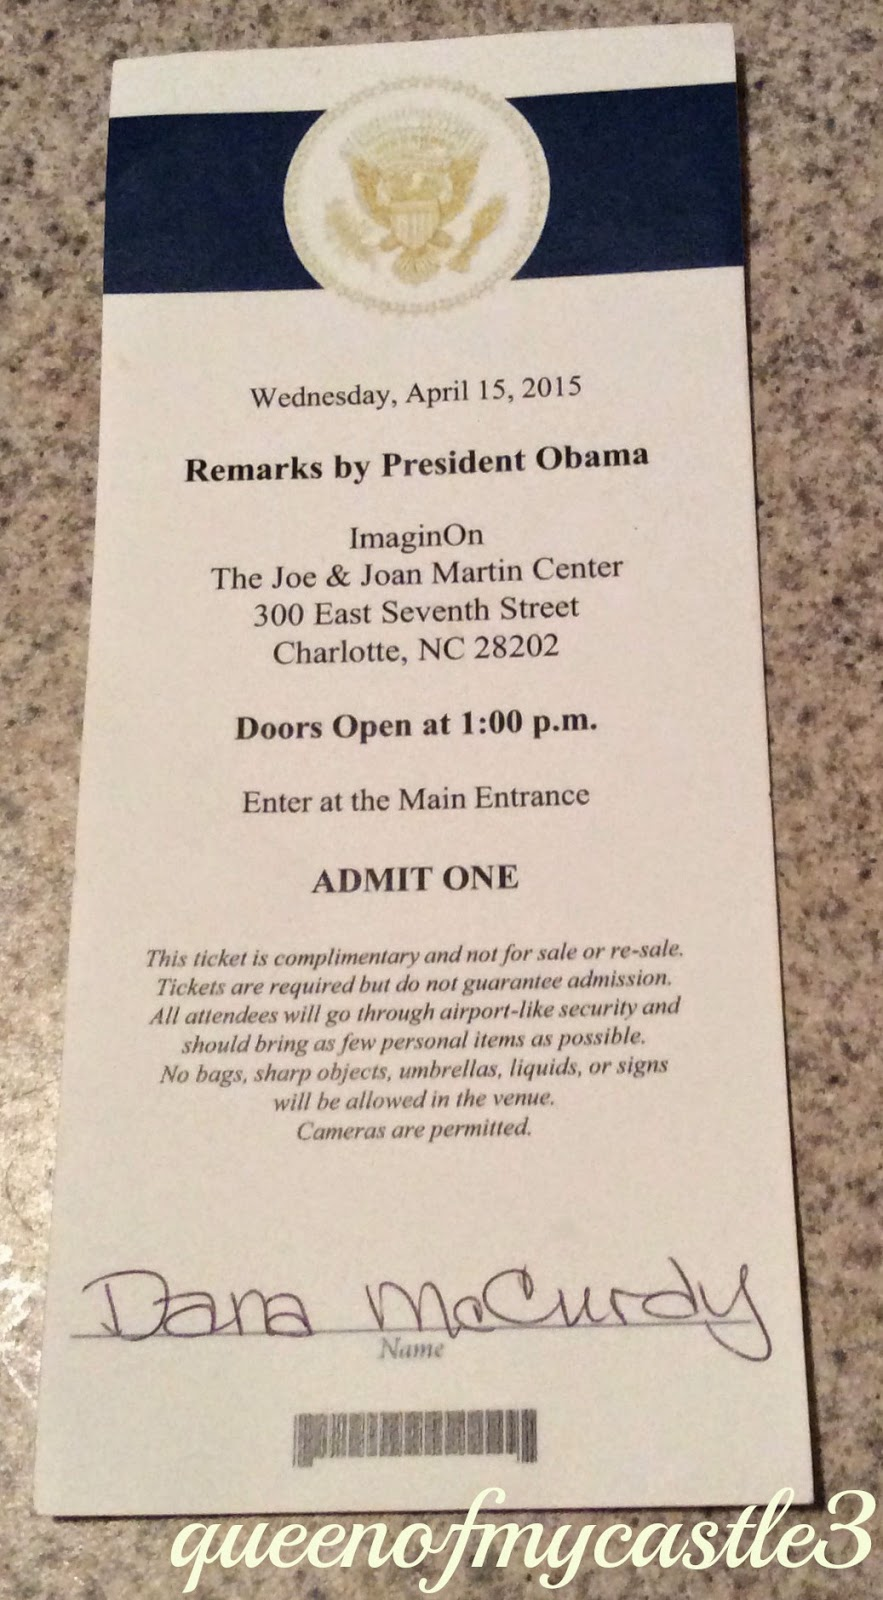 My ticket to see the President